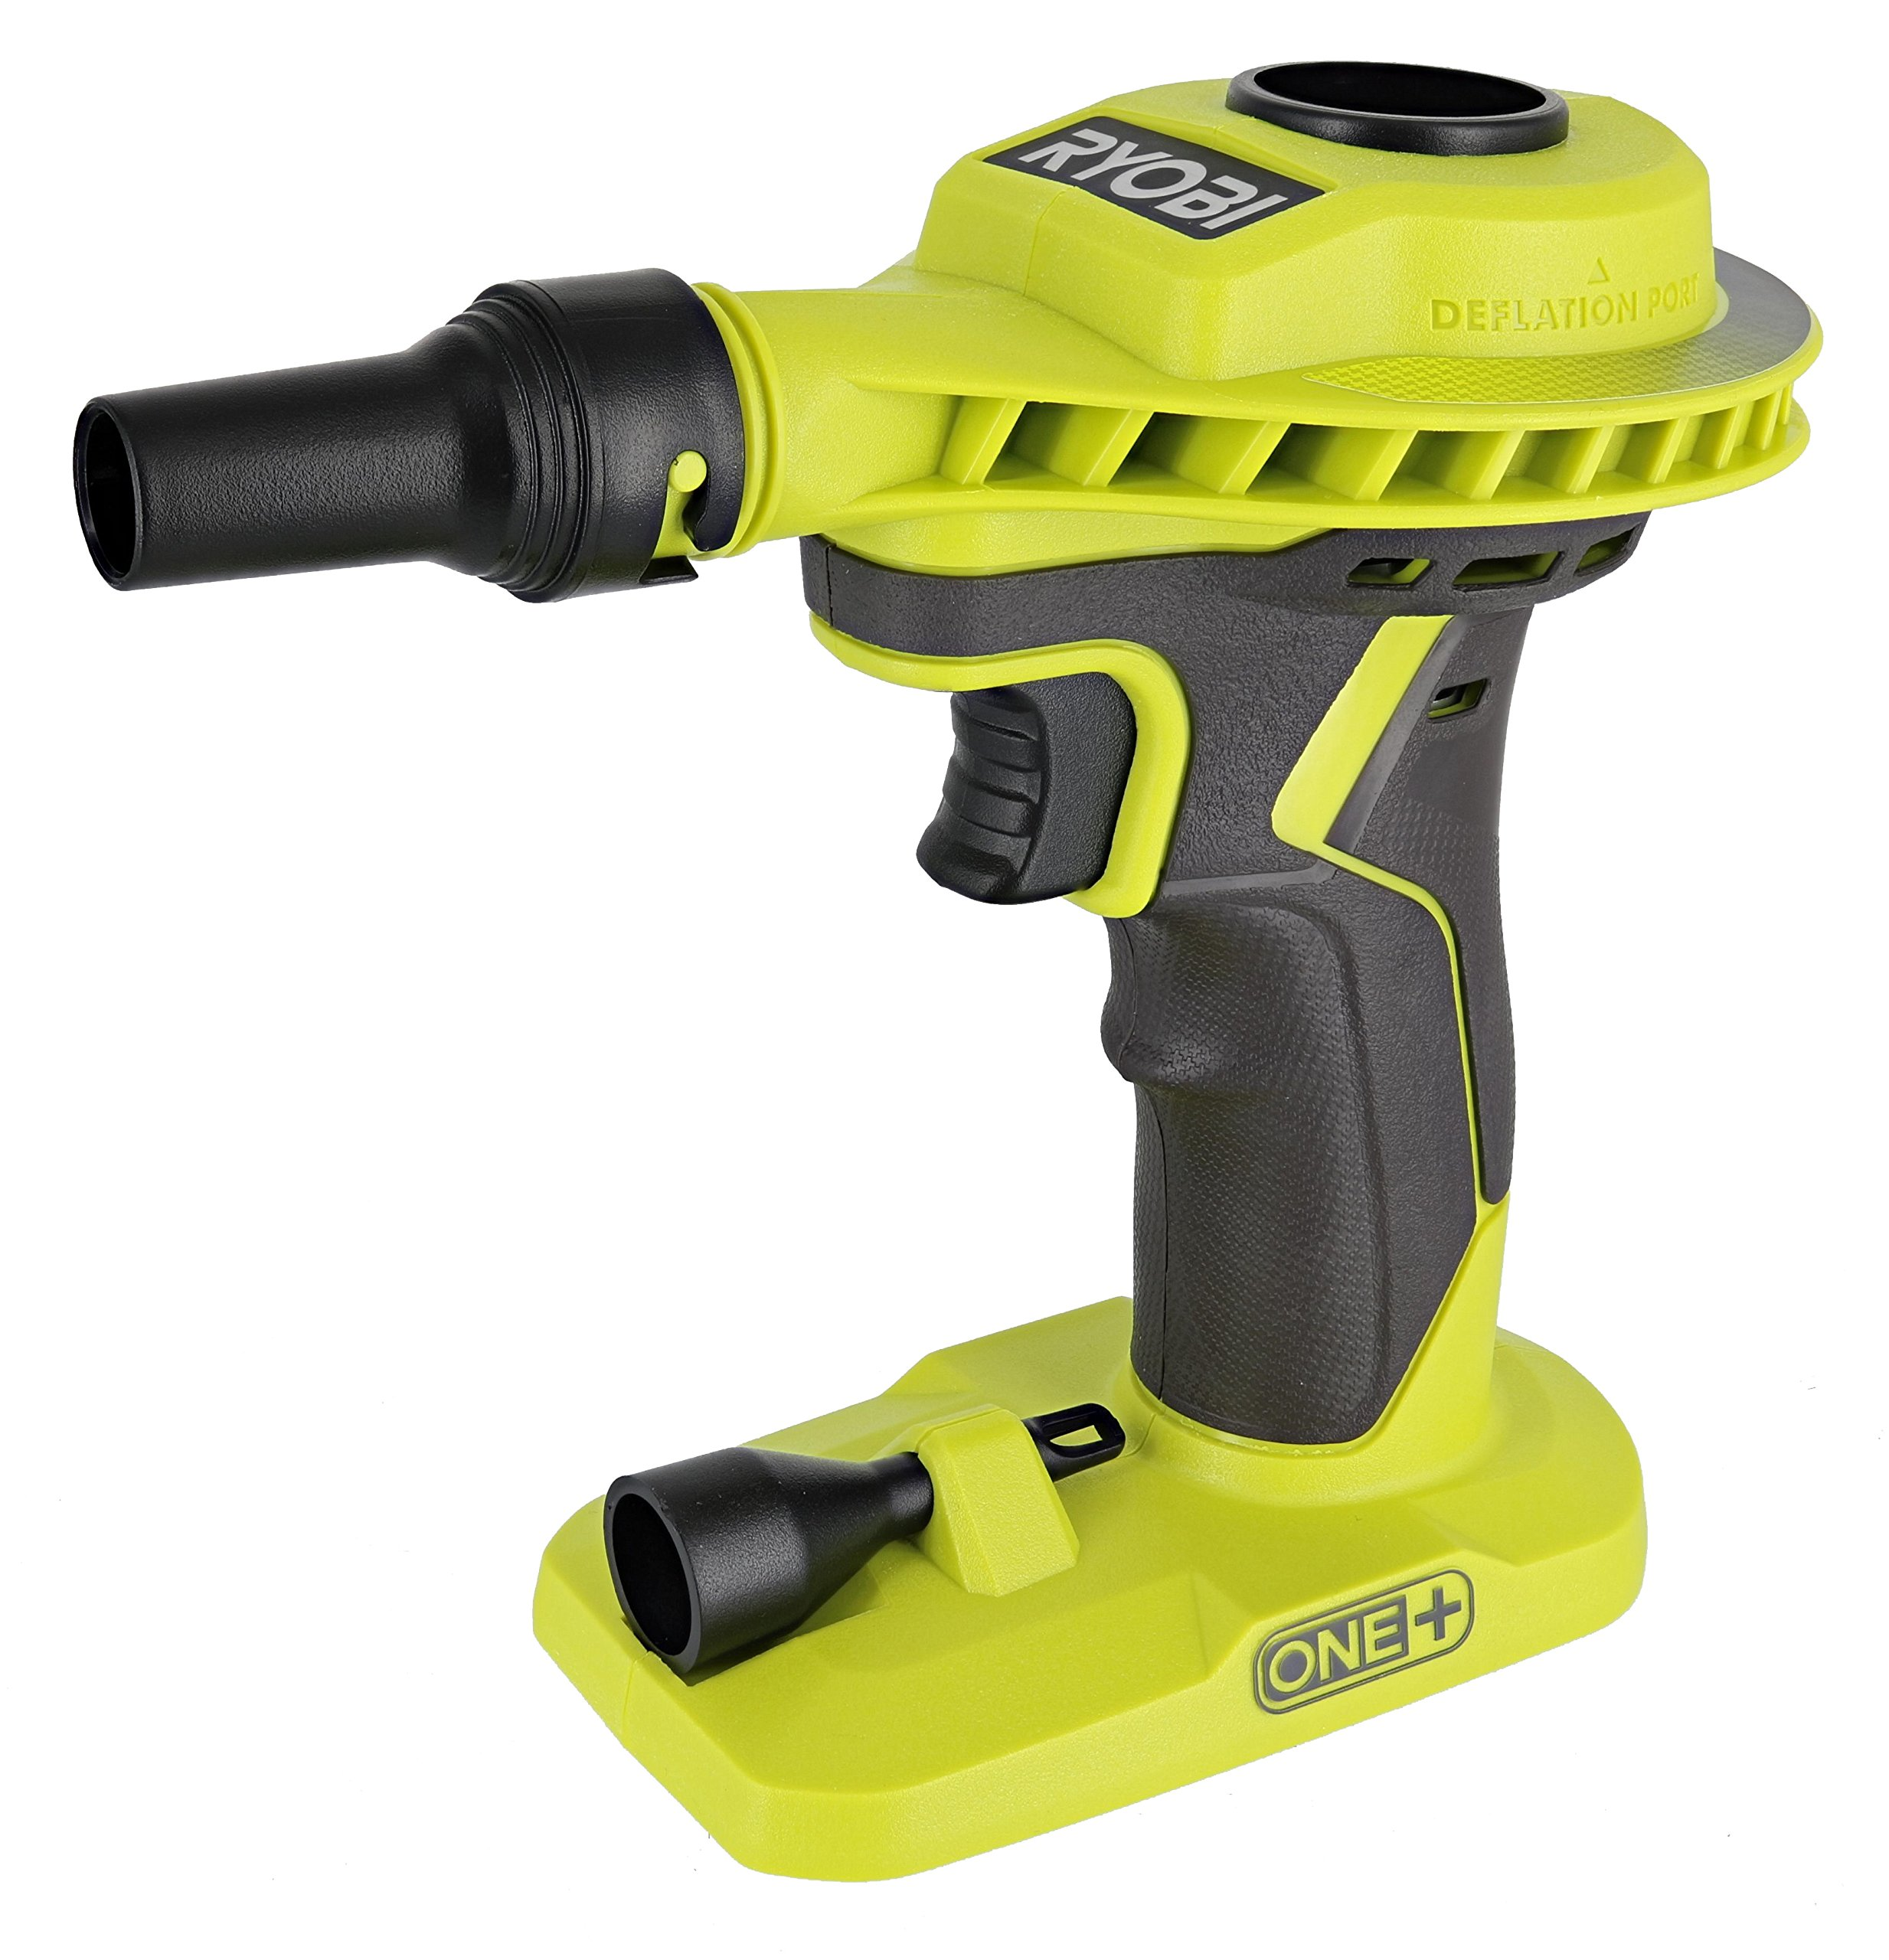 Ryobi P738 18V One+ Lithium Ion 18V One+ High Volume Power Inflator / Deflator for Mattresses and Recreational Inflatables by Ryobi